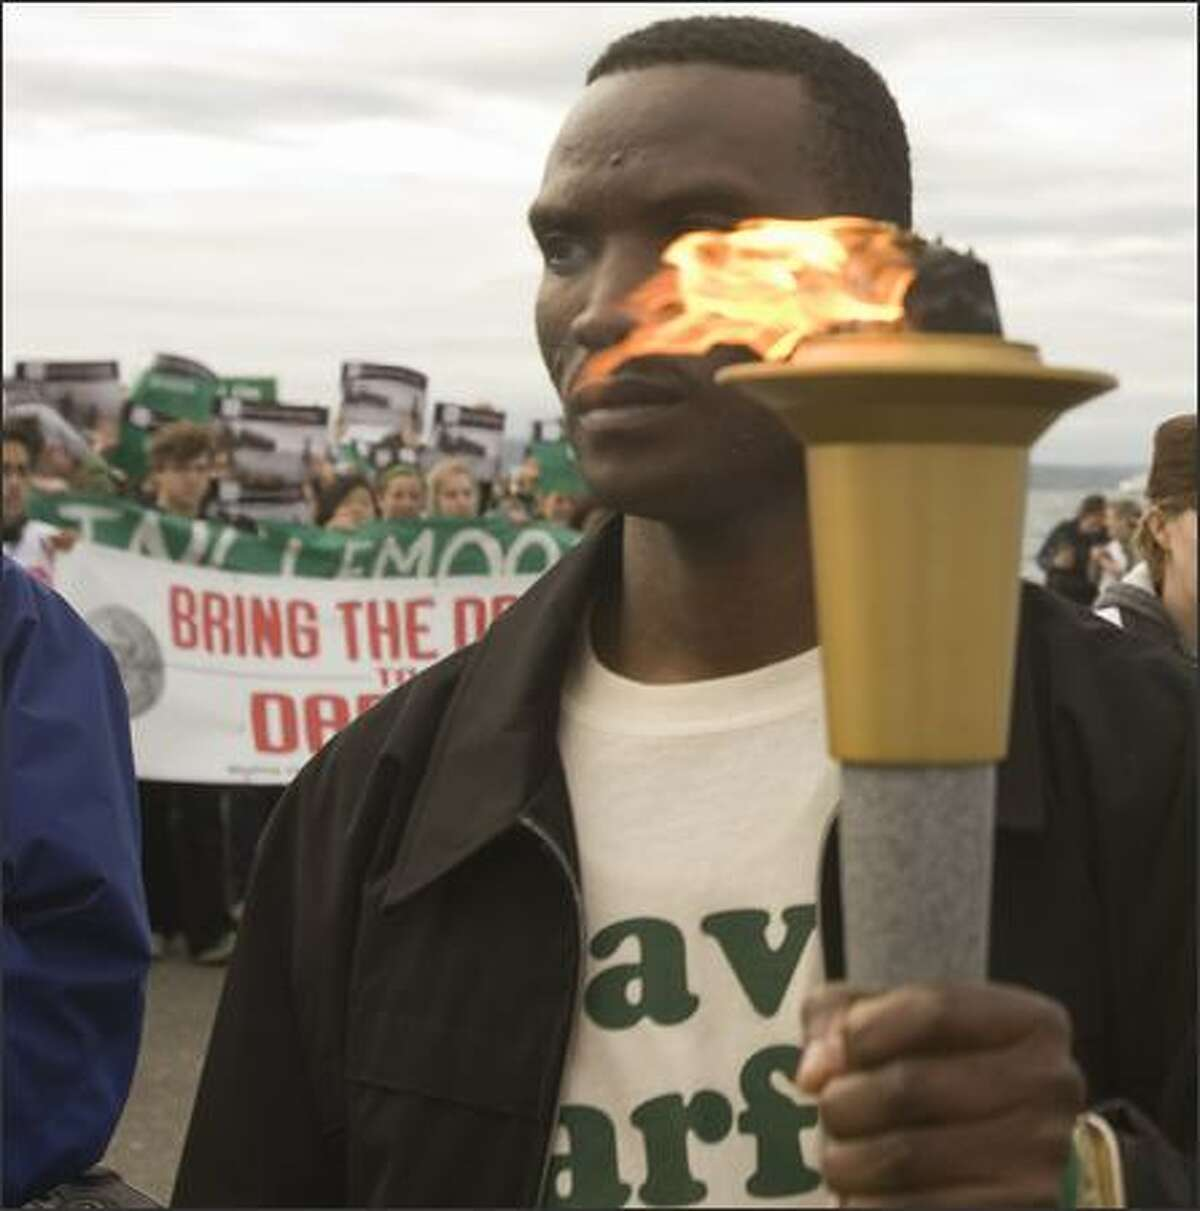 Darfur genocide survivor Ibrahim Adam carries the torch during the Seattle portion of the symbolic Dream for Darfur Olympic Torch Relay, which began in Darfur and will end in Beijing, the site of the 2008 Summer Olympics. The event is a global initiative aimed at urging China to use its considerable influence to help bring an end to the genocide in the Darfur region of Sudan.